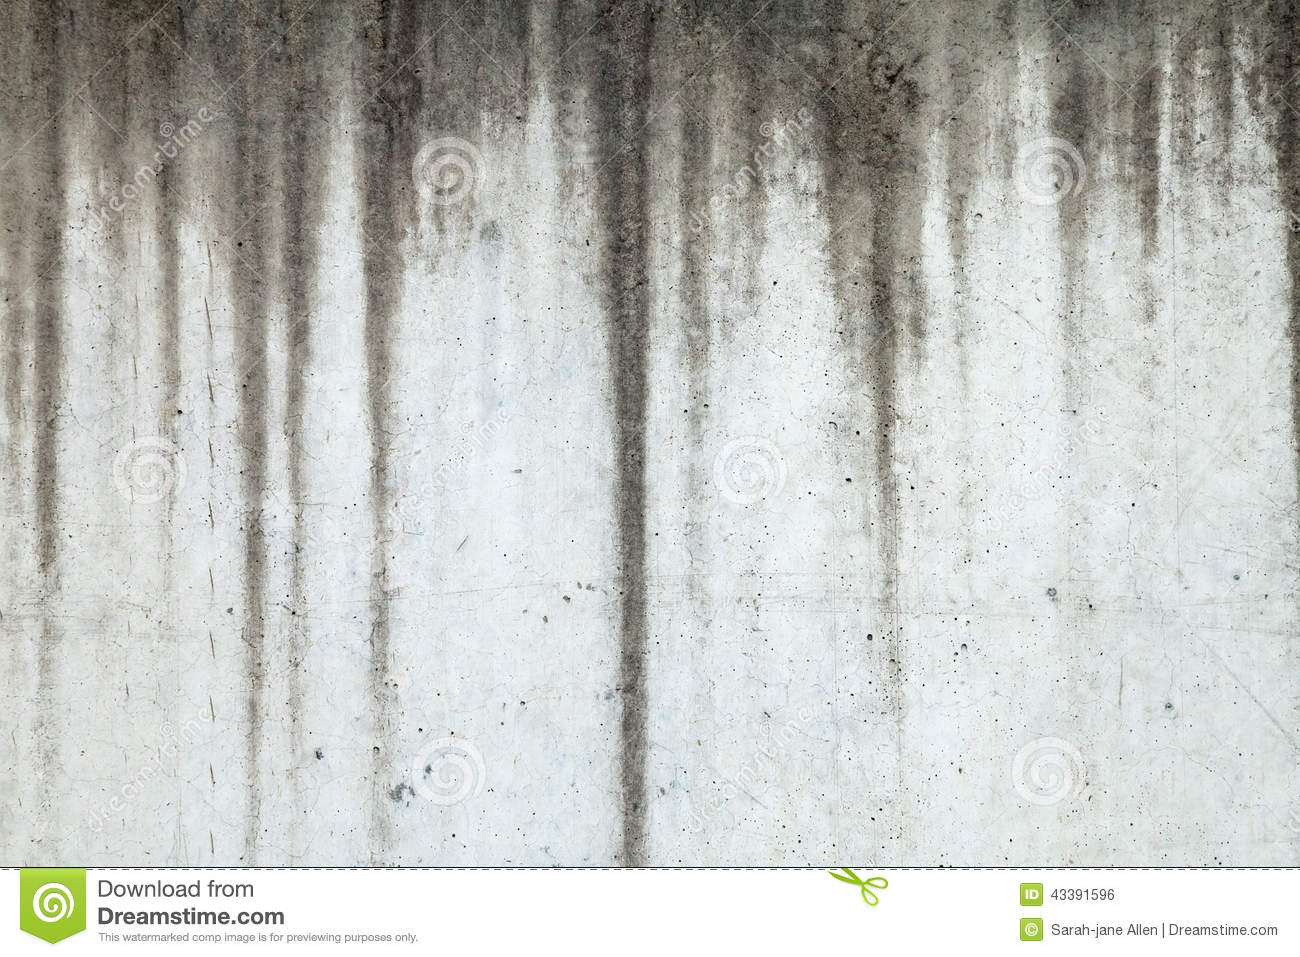 Civil Contractor Texture Of Concrete Wall With Water Marks Running Down